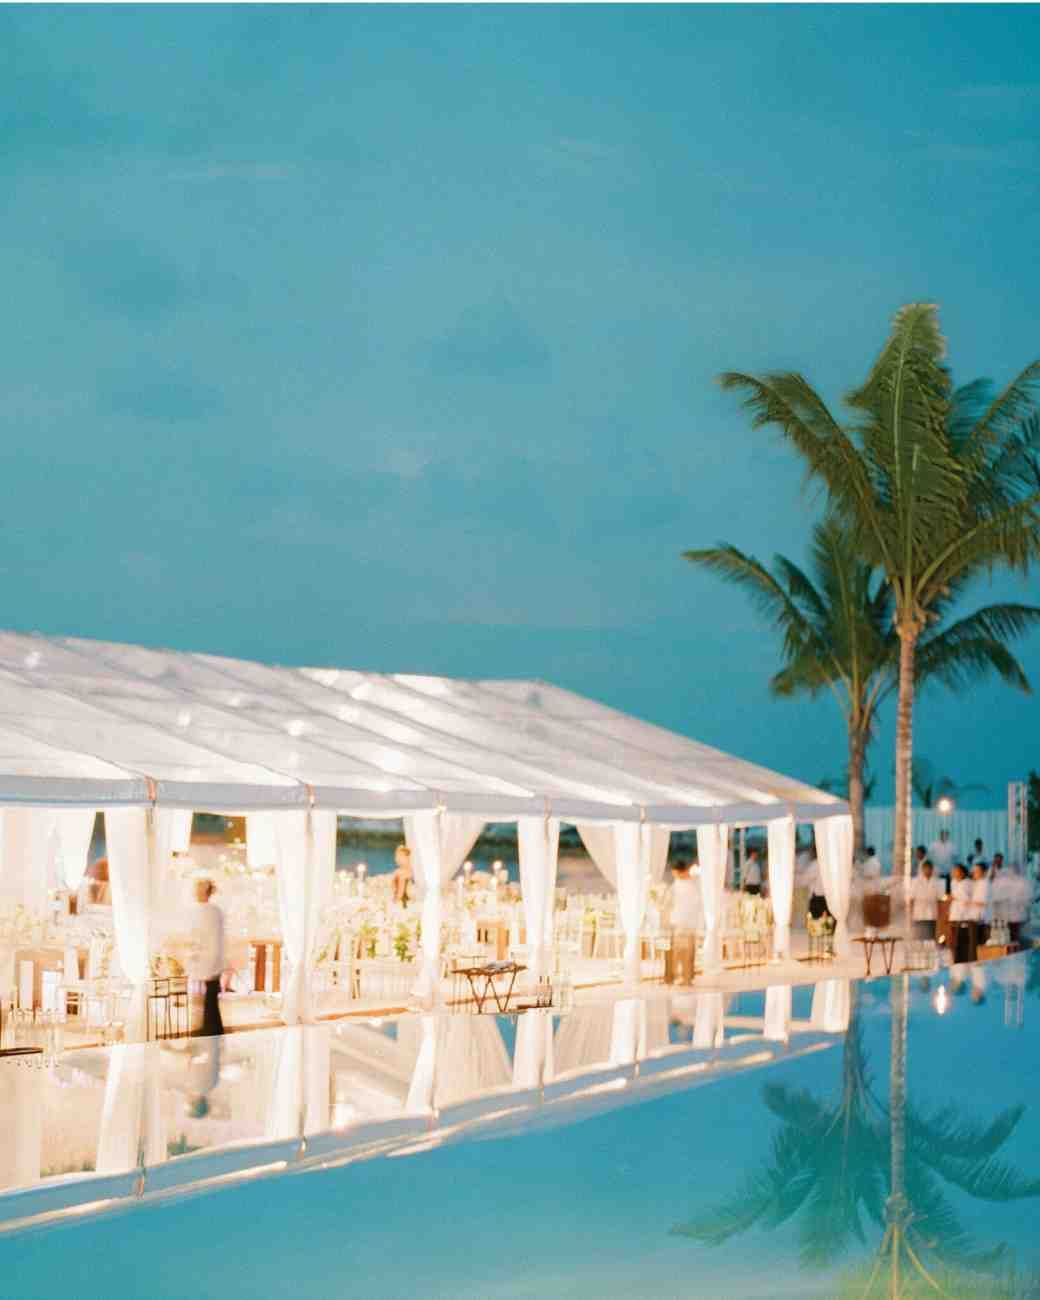 Beach Wedding Reception Ideas: 28 Tent Decorating Ideas That Will Upgrade Your Wedding